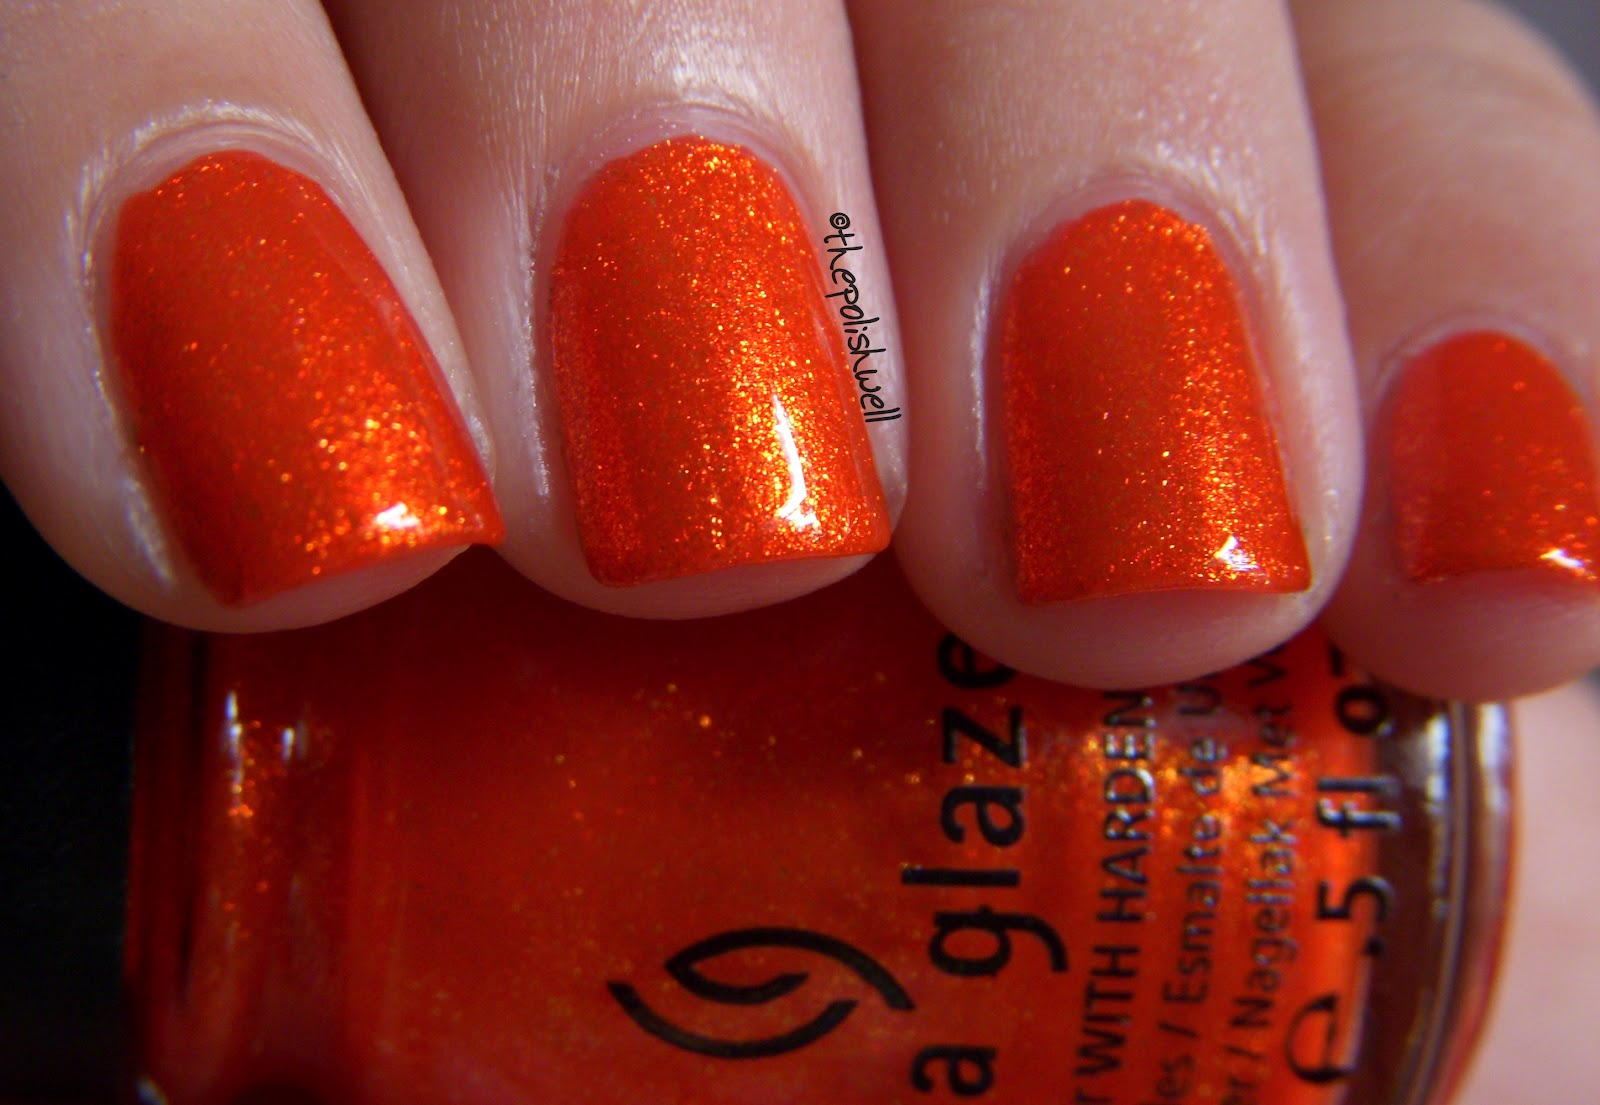 Splutters Isnt This One Insanely Gorgeous Polish Bright Red Orange With Even Brighter Gold Glass Flecks That Gives The Color Incredible Depth